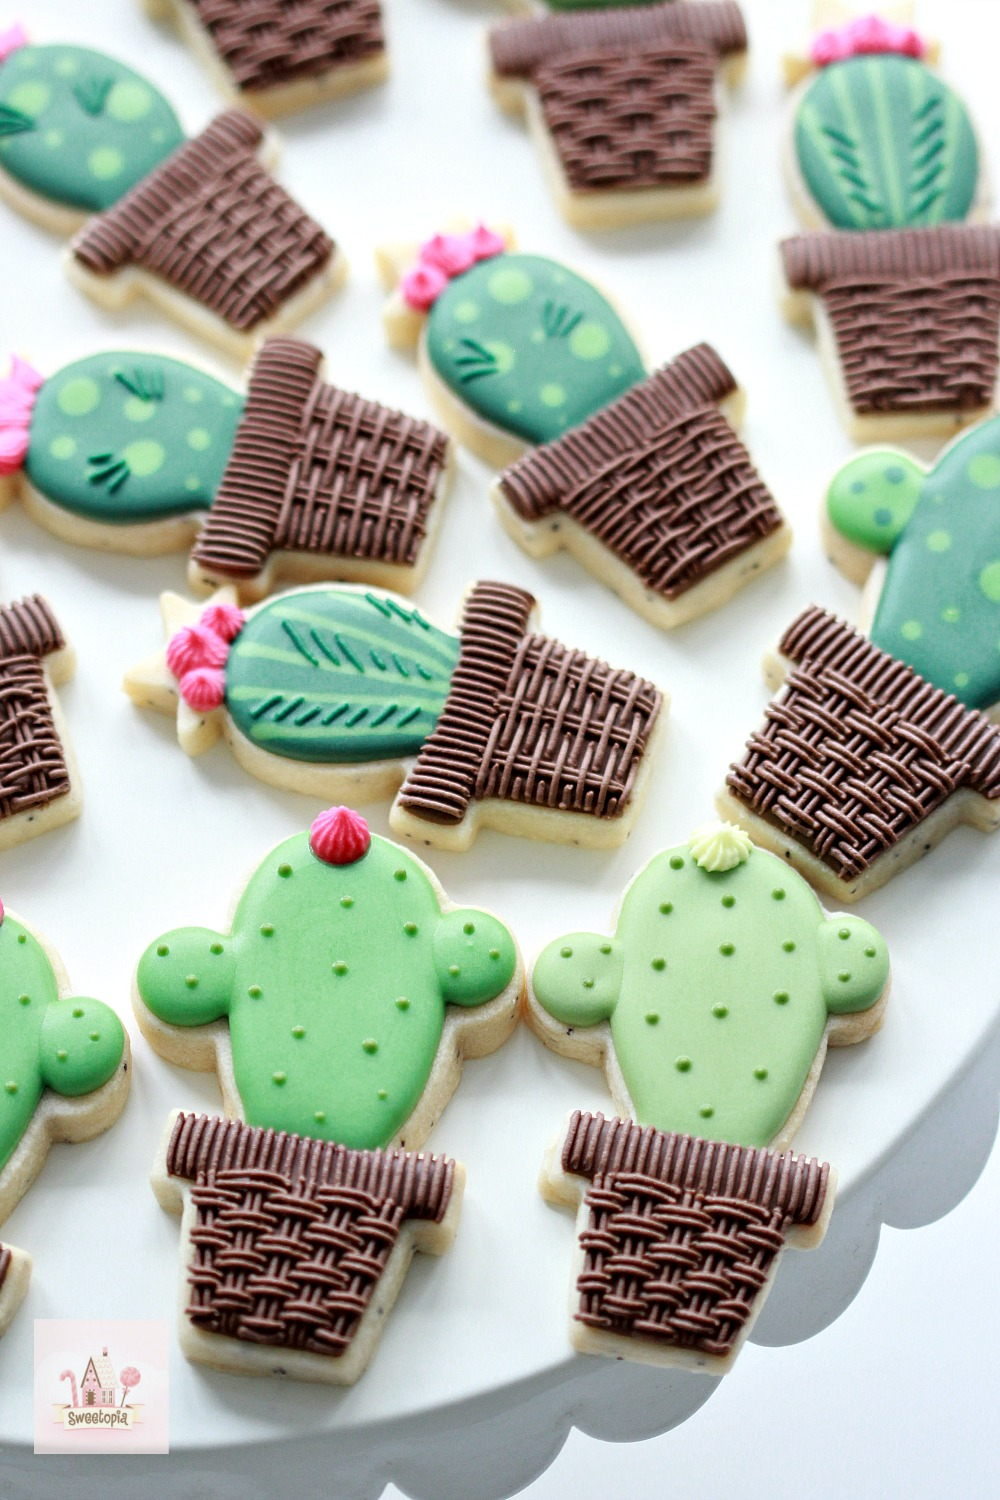 Cactus Cookie Tutorial Video